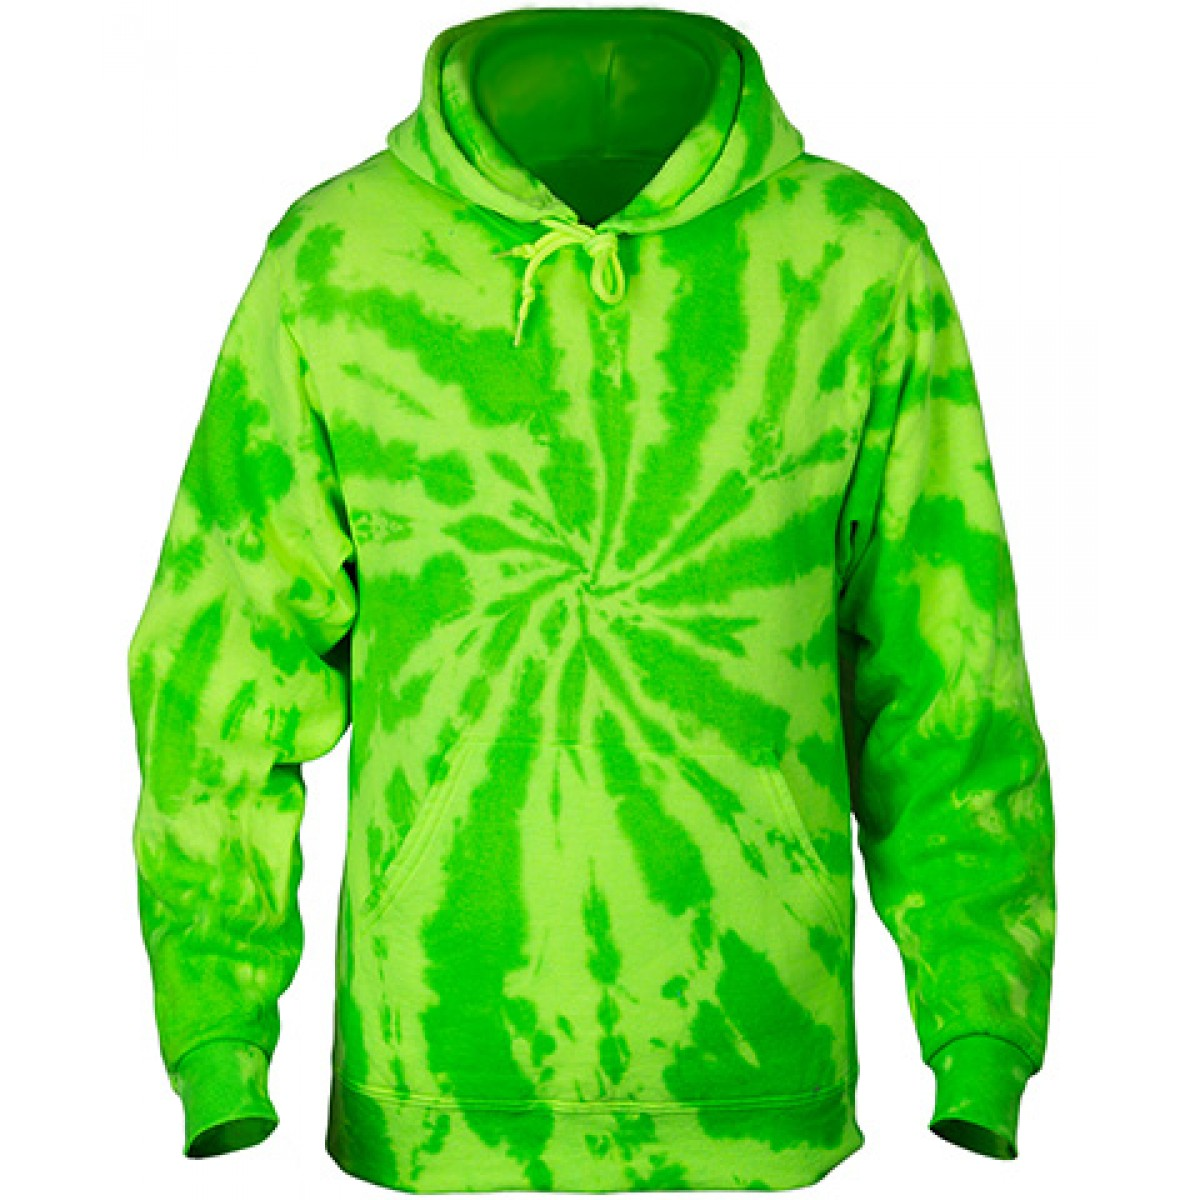 Tie-Dye Pullover Hooded Sweatshirt-Neon Green-YS